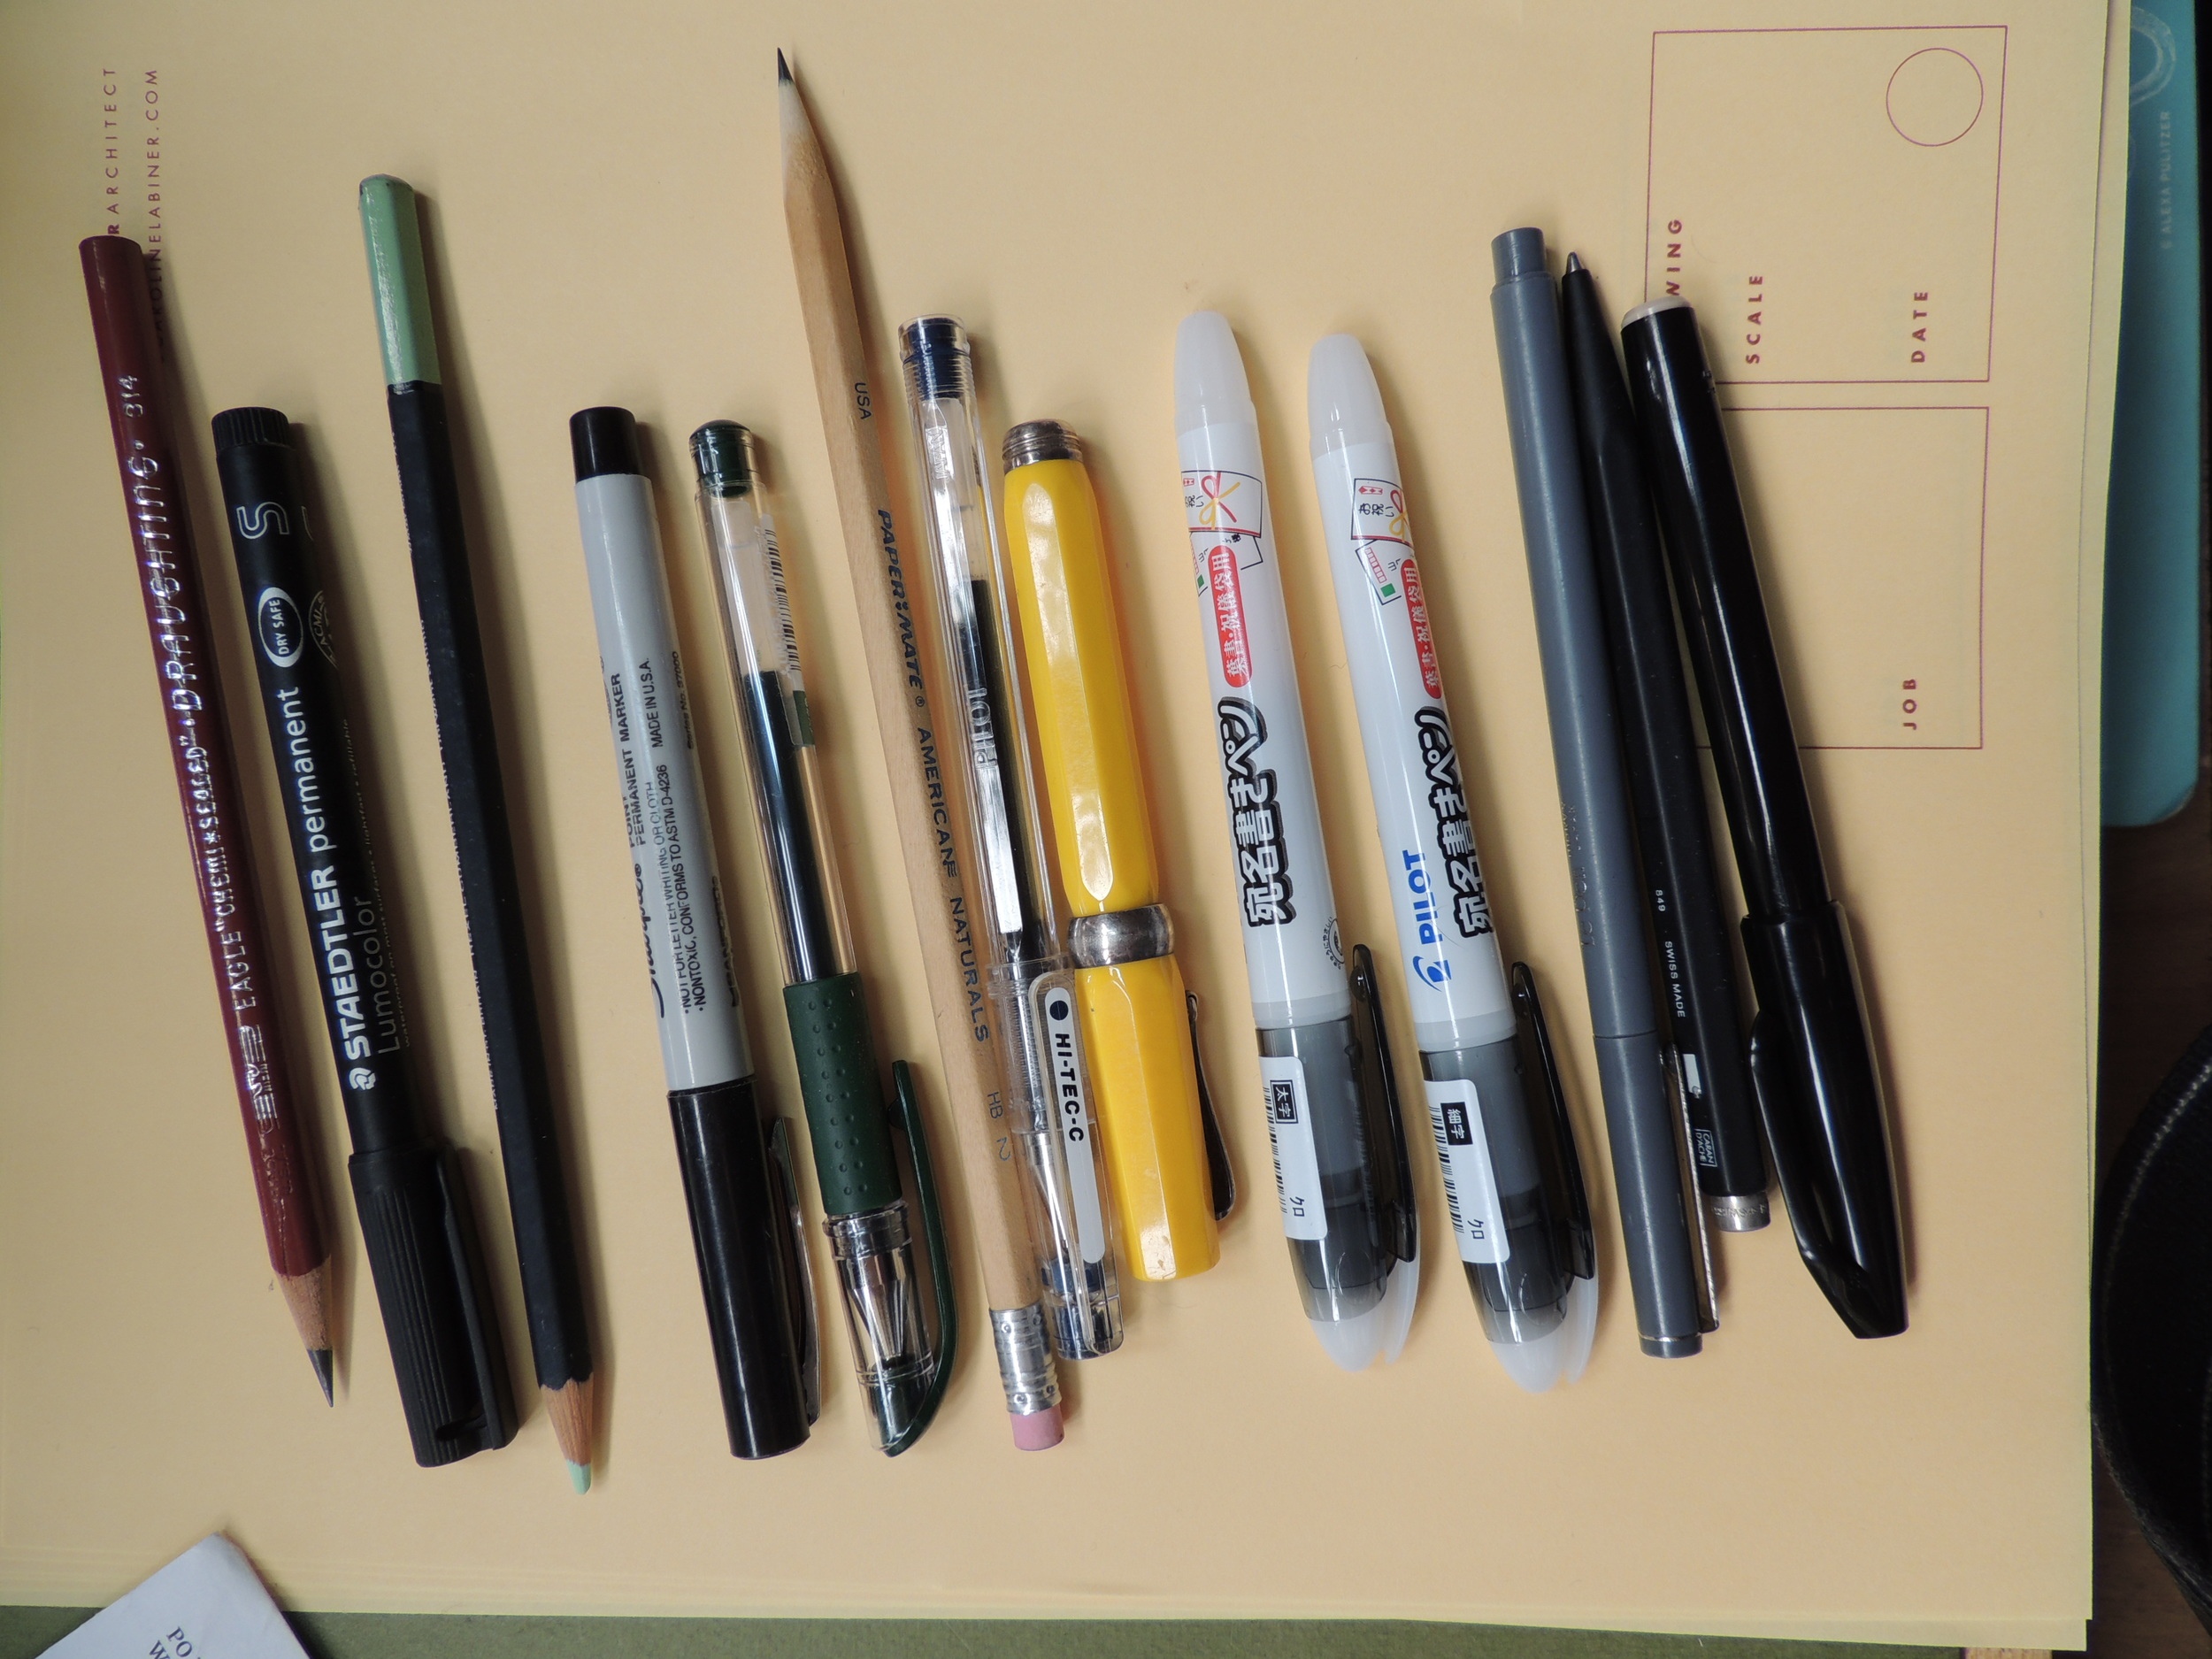 The pens and pencils on my desk. I am in love with Fine, Medium and Broad Pilot Envelope pens - not in small part because all the text is in Japanese. They are expressive and dry fast.  And do work beautifully on envelopes.